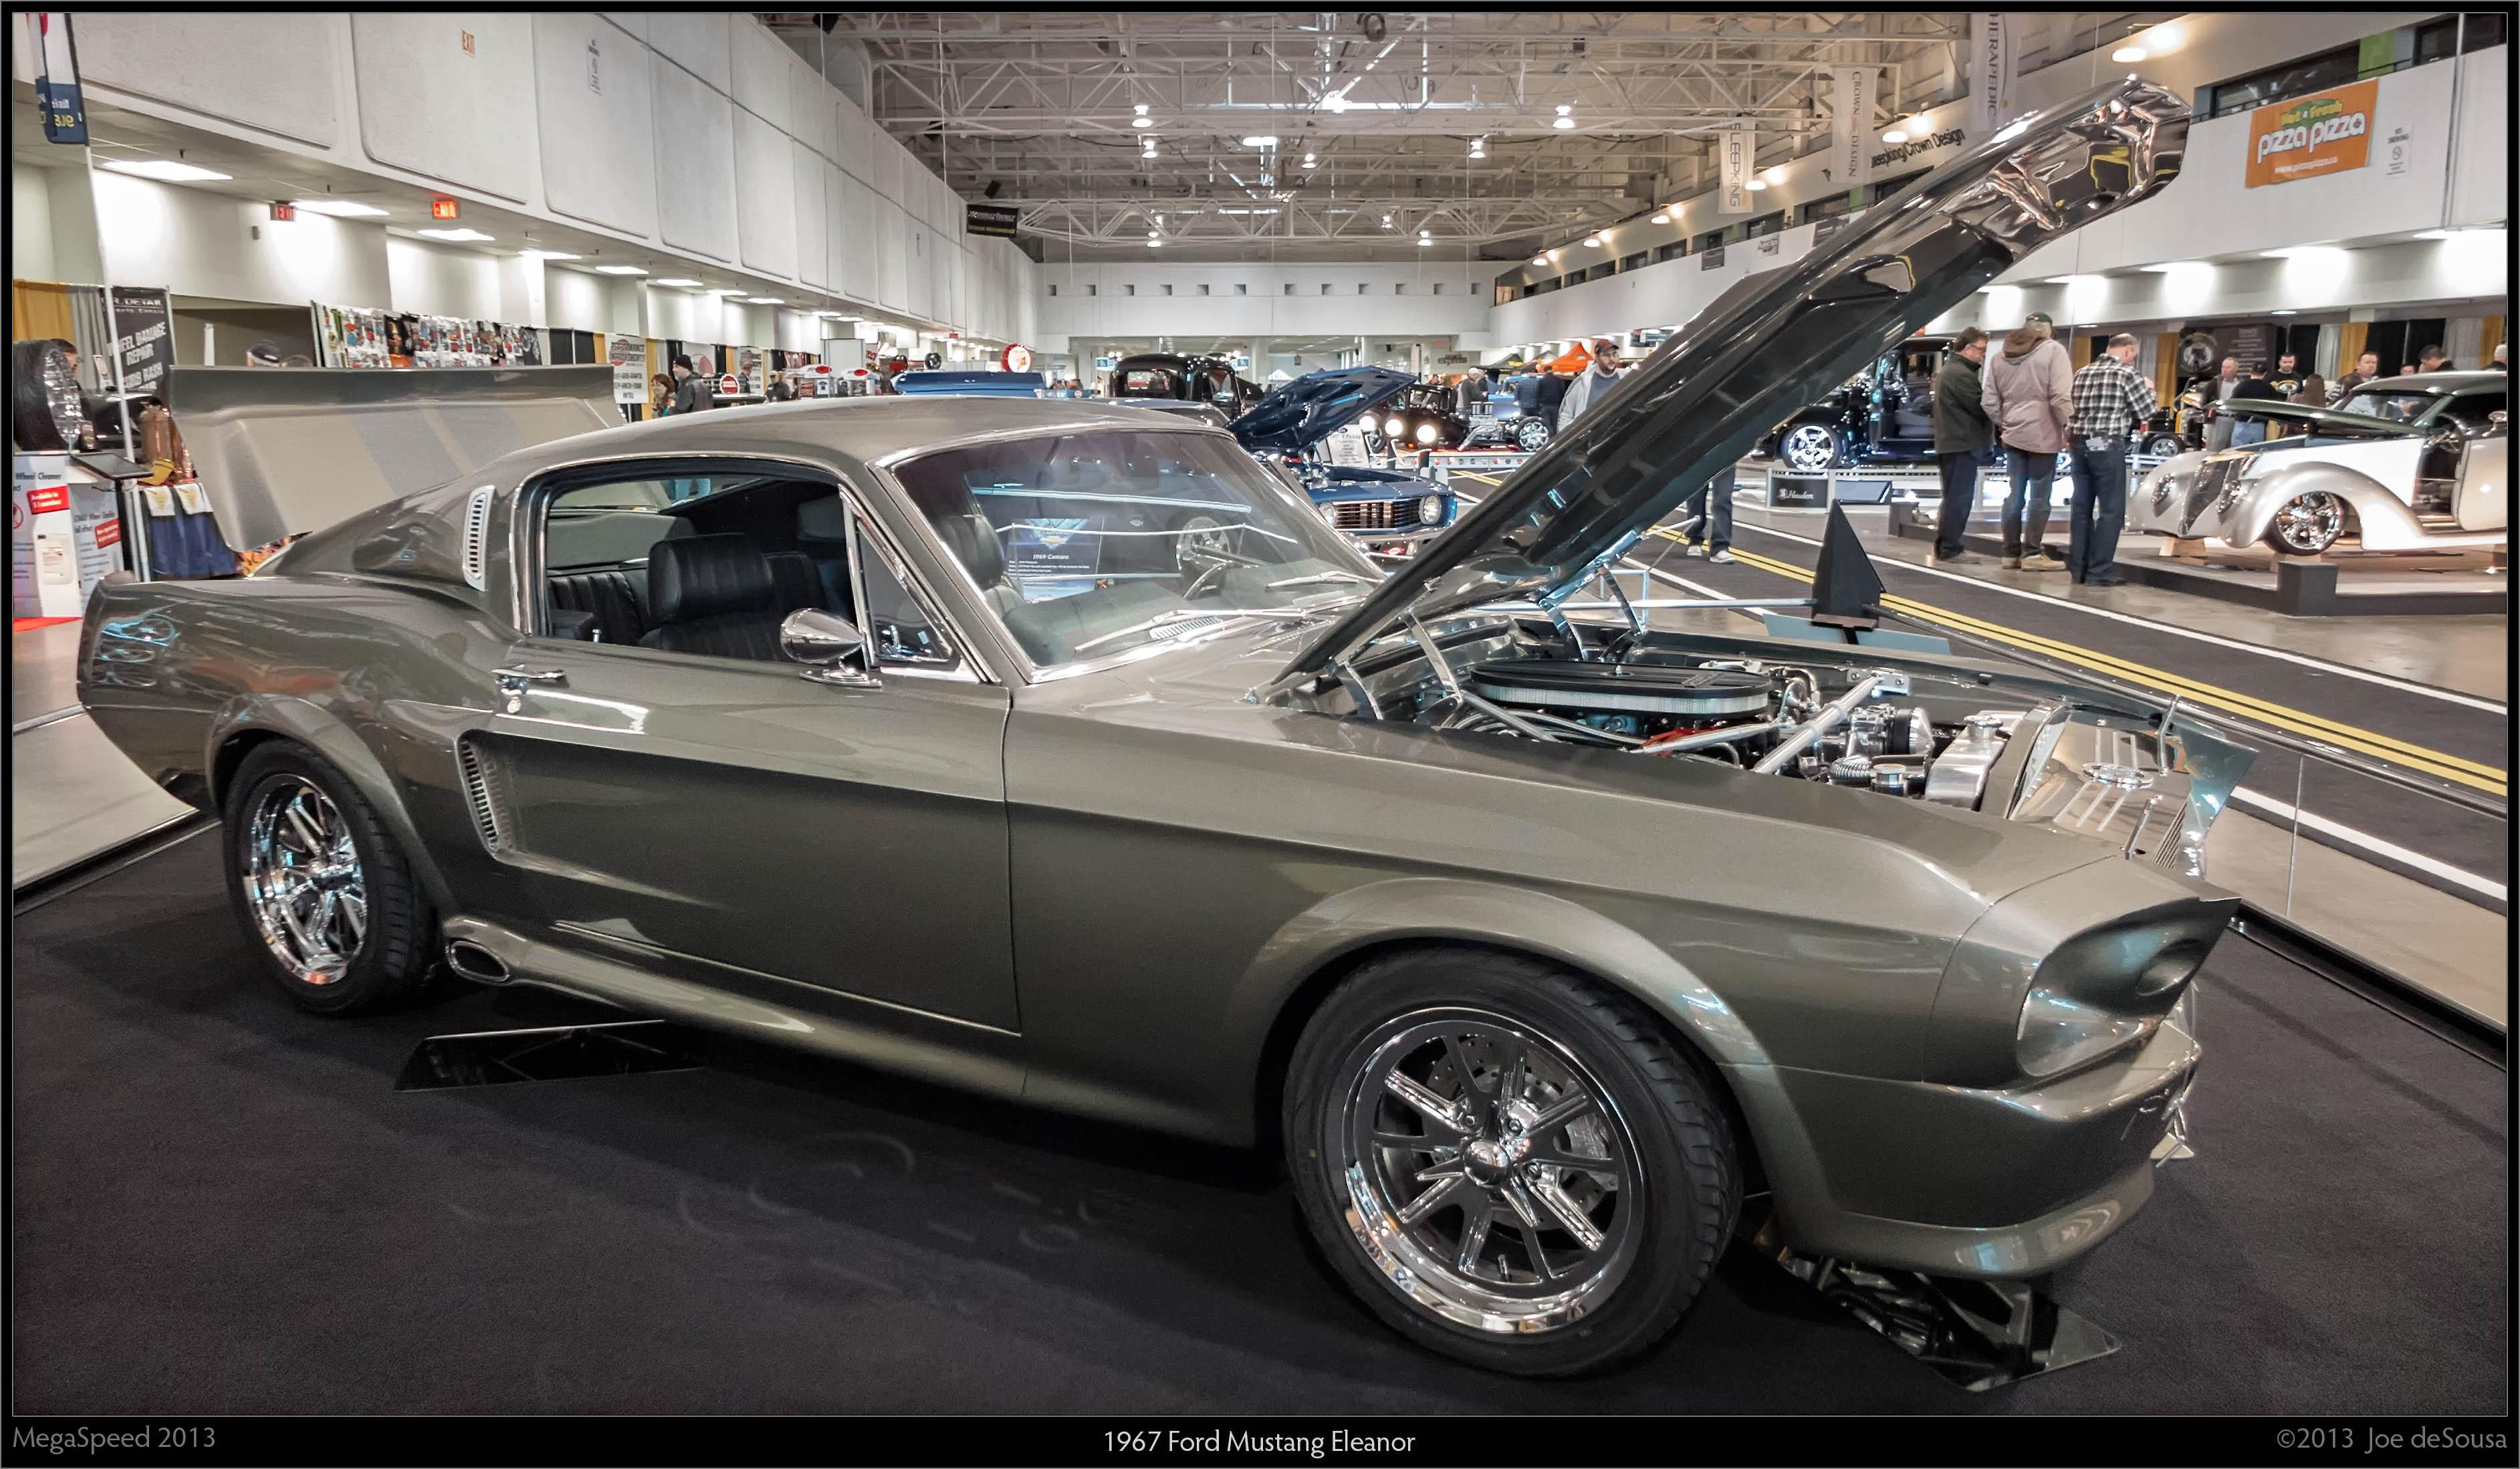 1967 ford mustang model year profile